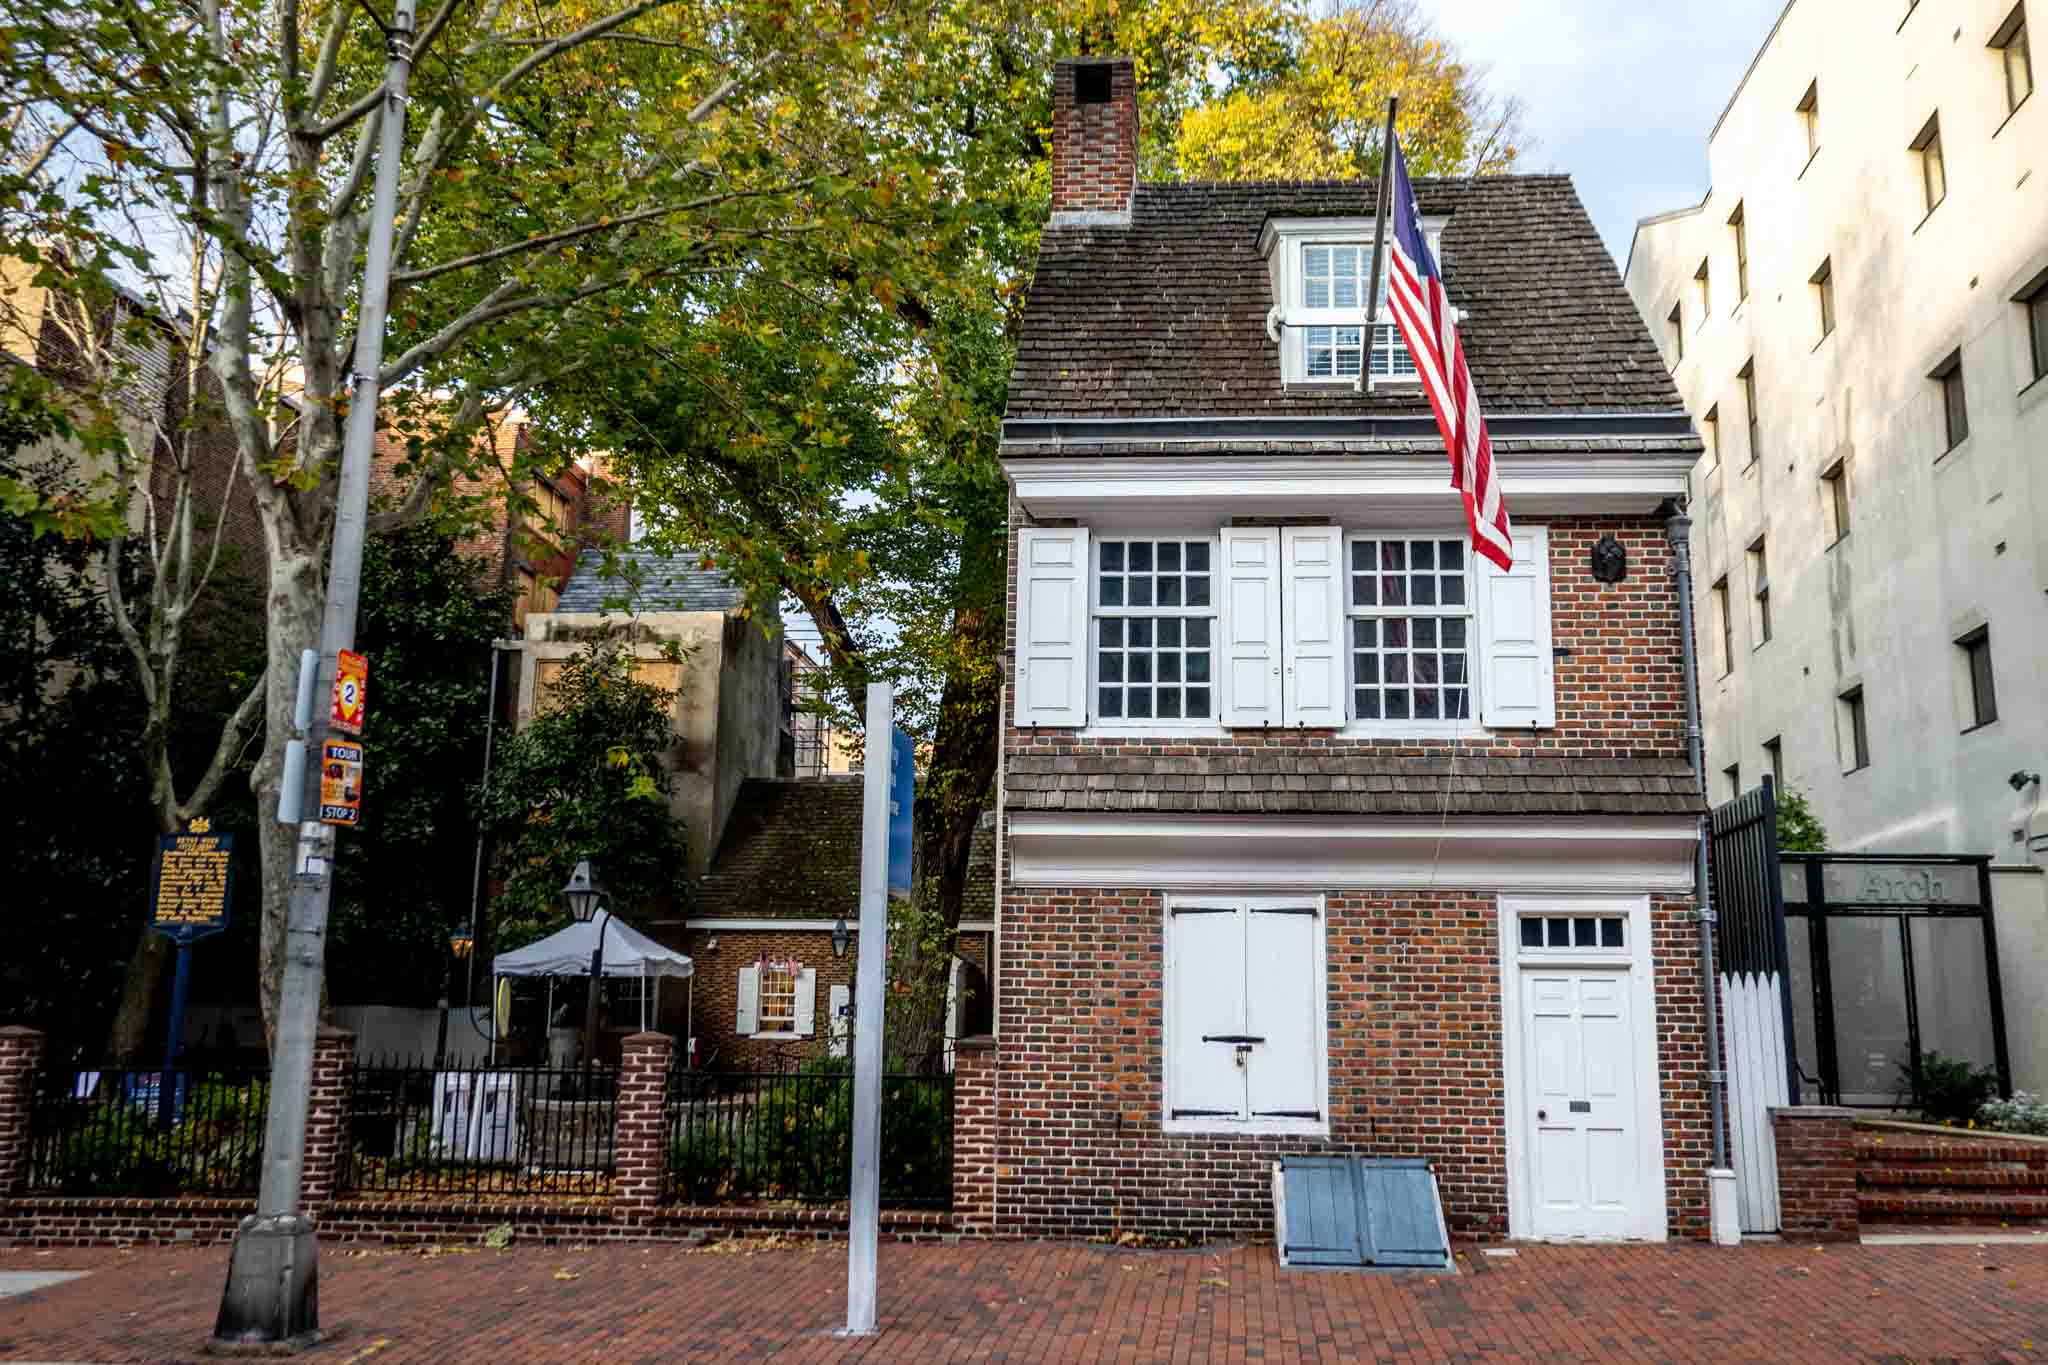 Exterior of red brick Betsy Ross House with American flag